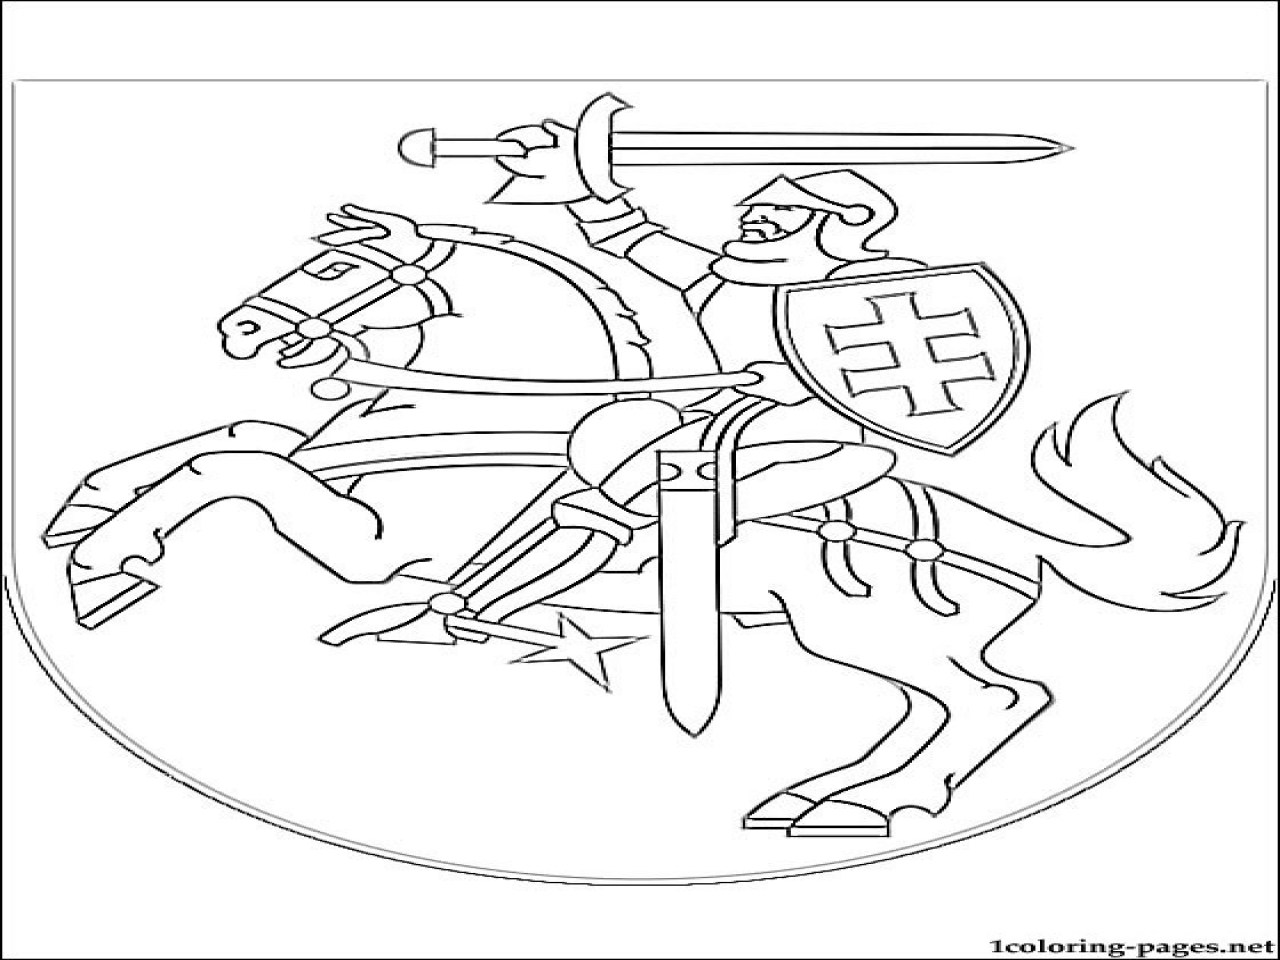 norway flag coloring page norway coloring pages at getdrawings free download coloring norway flag page